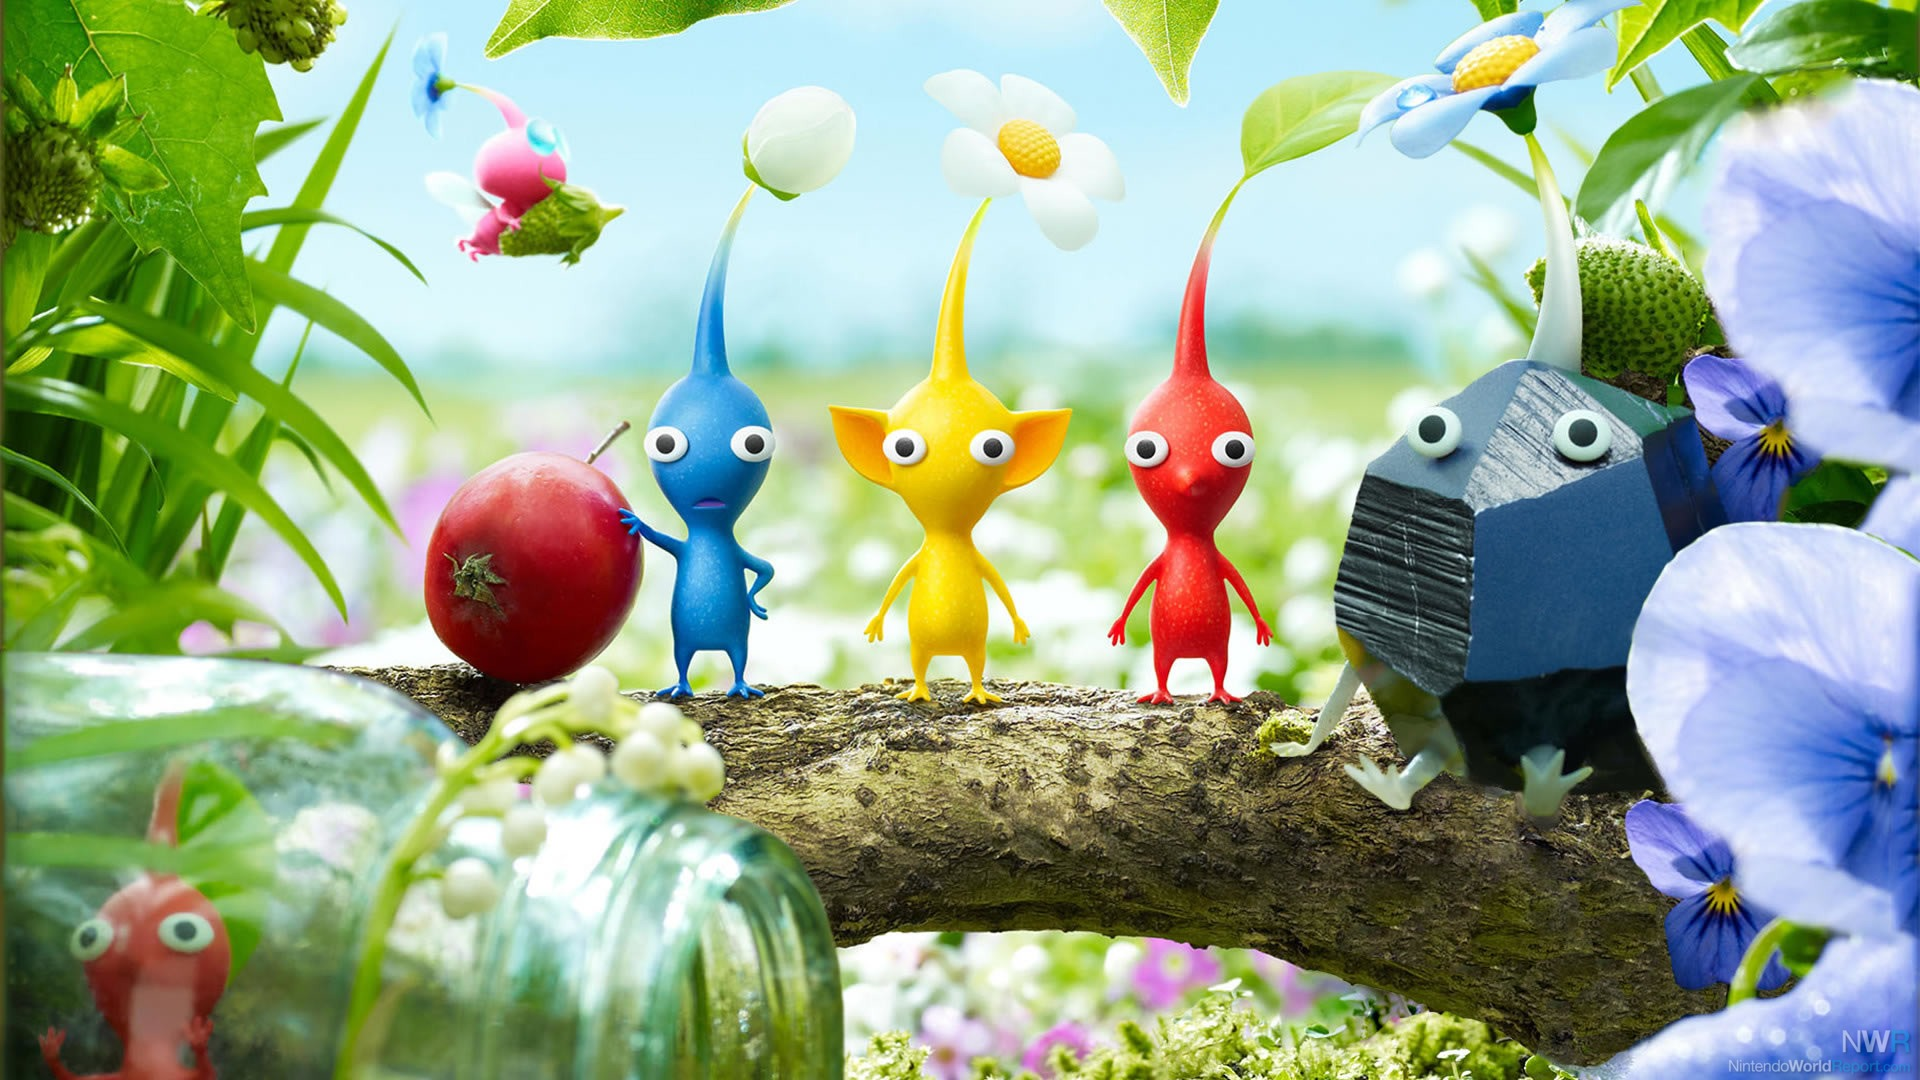 Shigeru Miyamoto Confirms Development of Pikmin 4